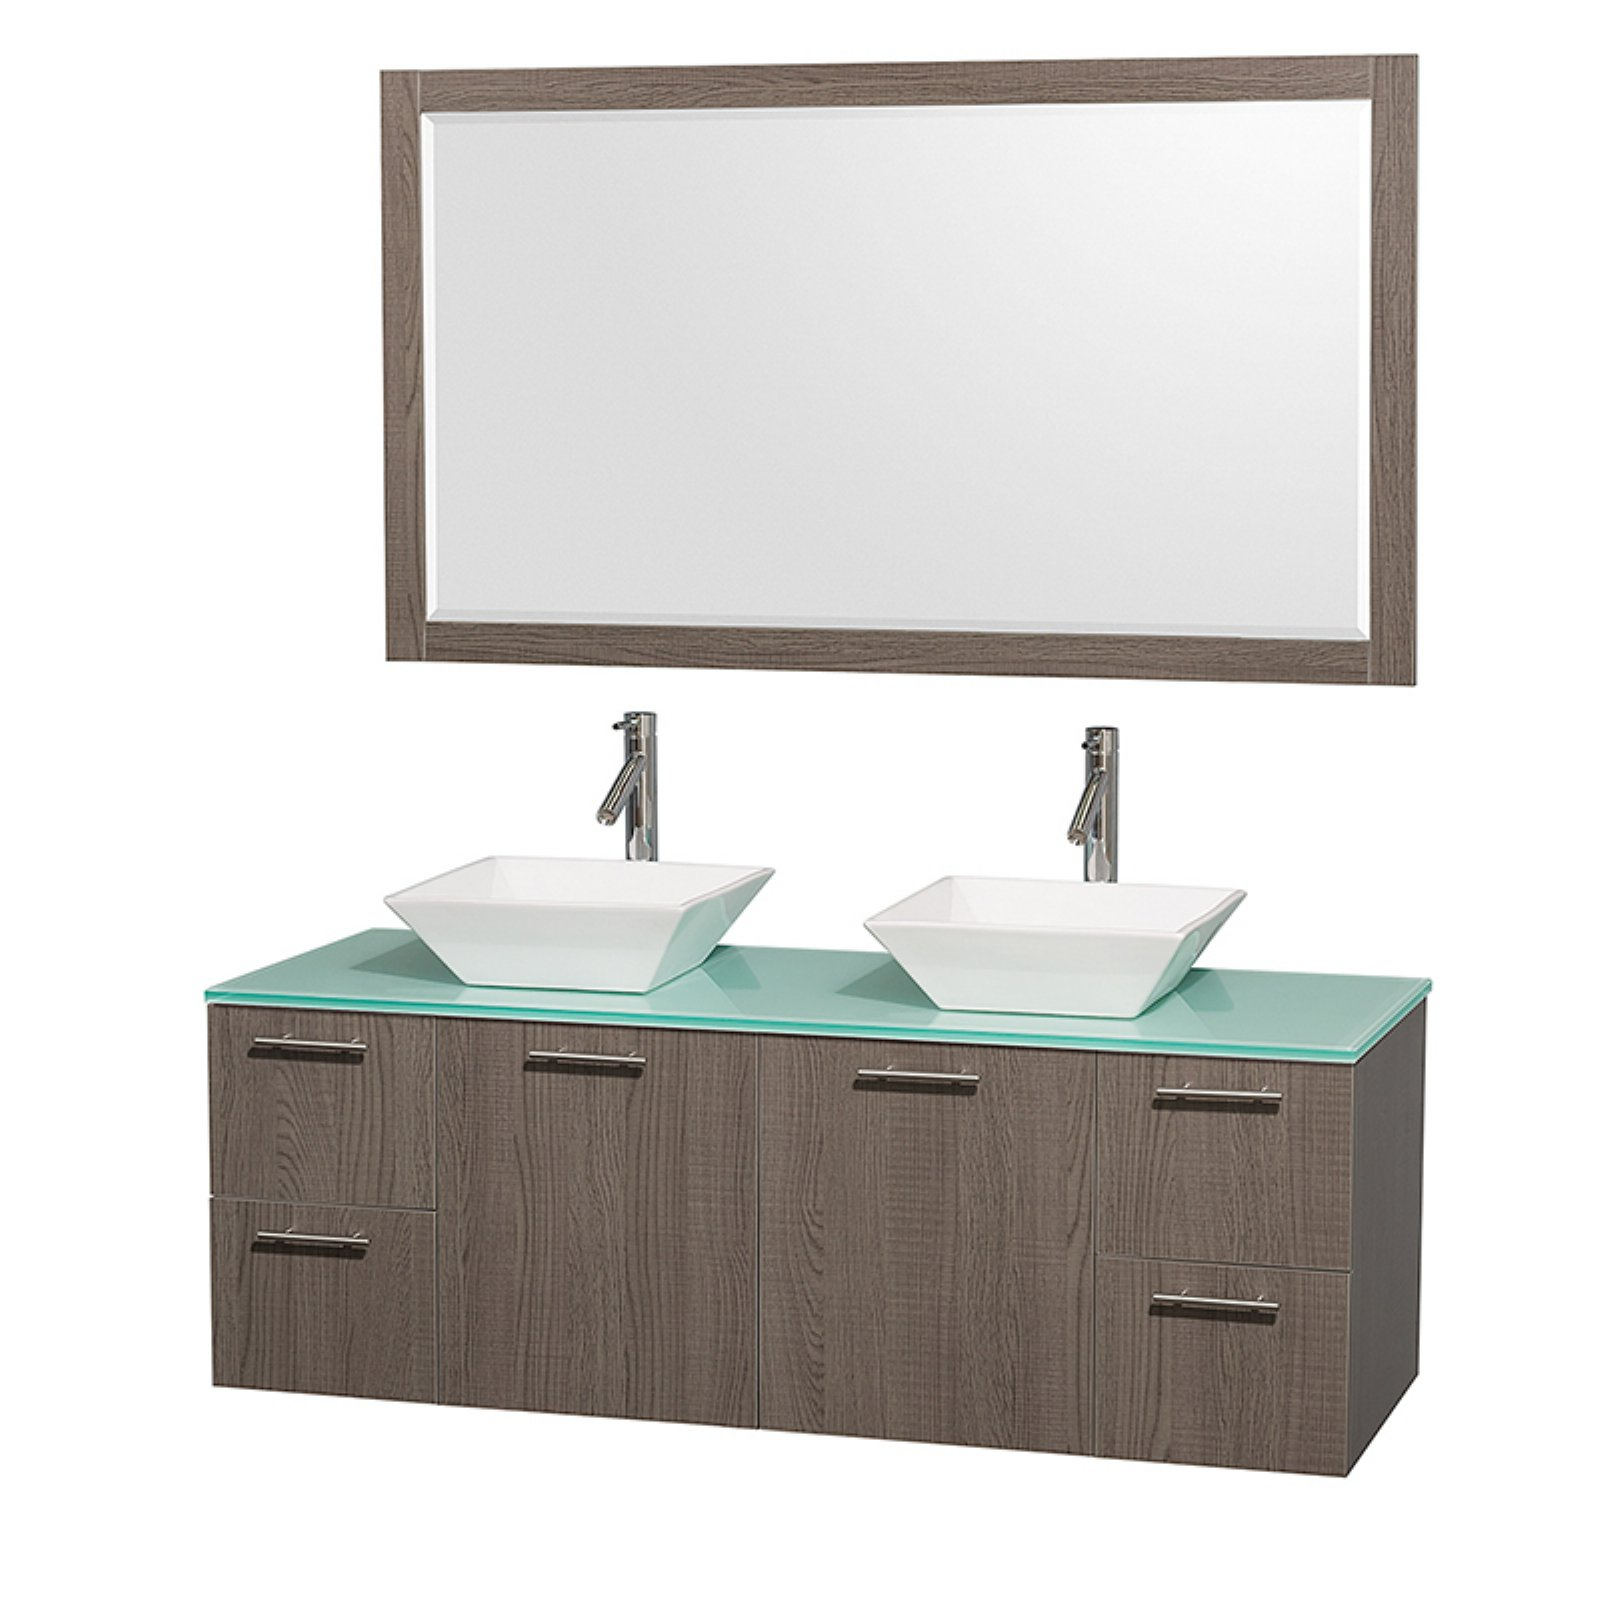 """Wyndham Collection Amare 60"""" Double Bathroom Vanity, Grey Oak with White Man-Made Stone Top with White Porcelain Sinks, and 58"""" Mirror"""